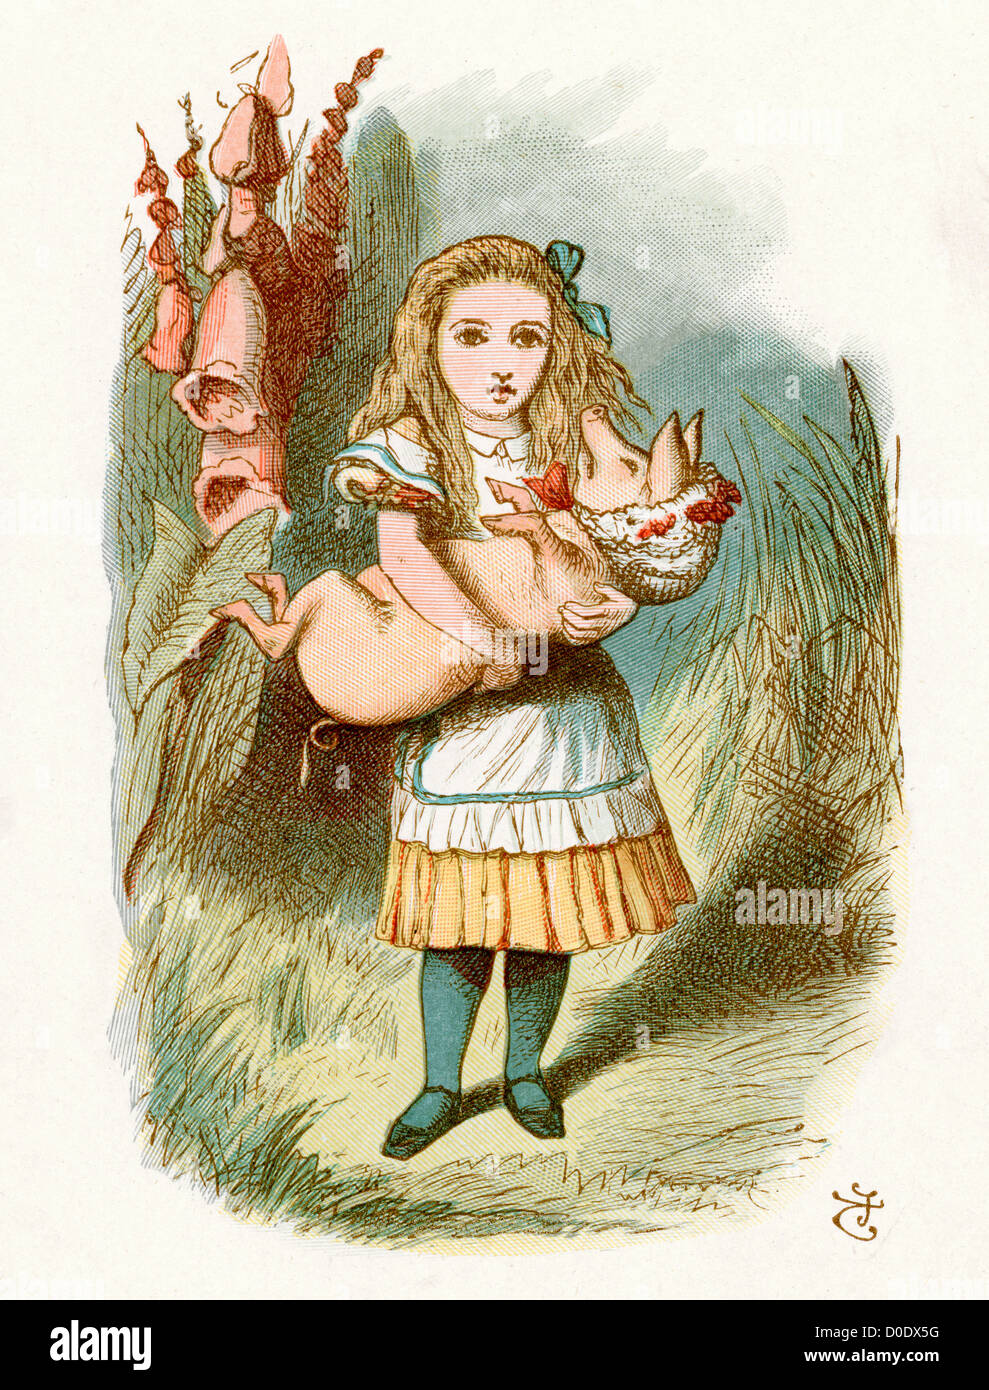 The Pig Baby, from the Lewis Carroll Story Alice in Wonderland, Illustration by Sir John Tenniel 1871 - Stock Image